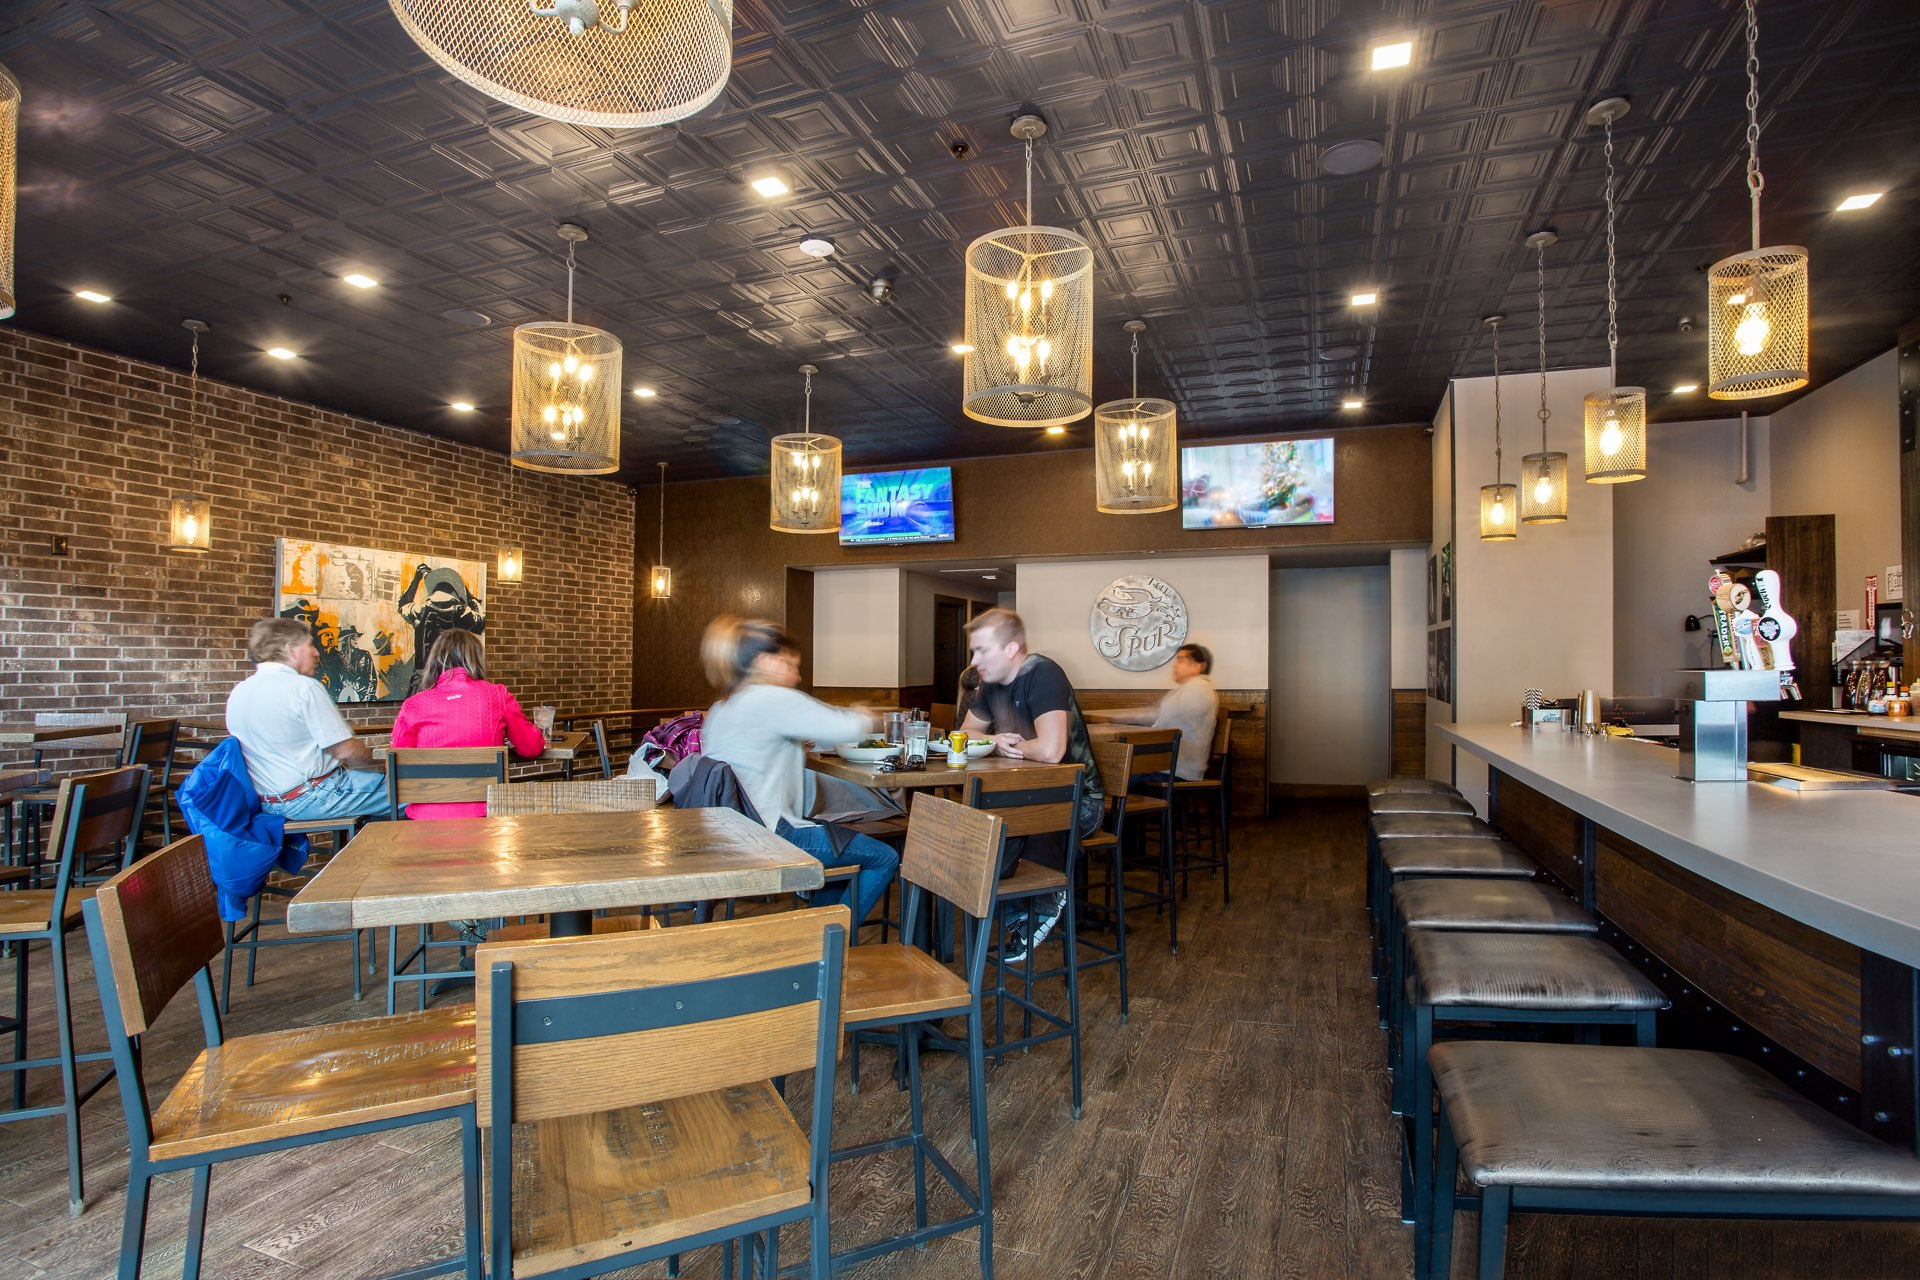 The Spur Bar and Grill, architectural design by Elliott Workgroup